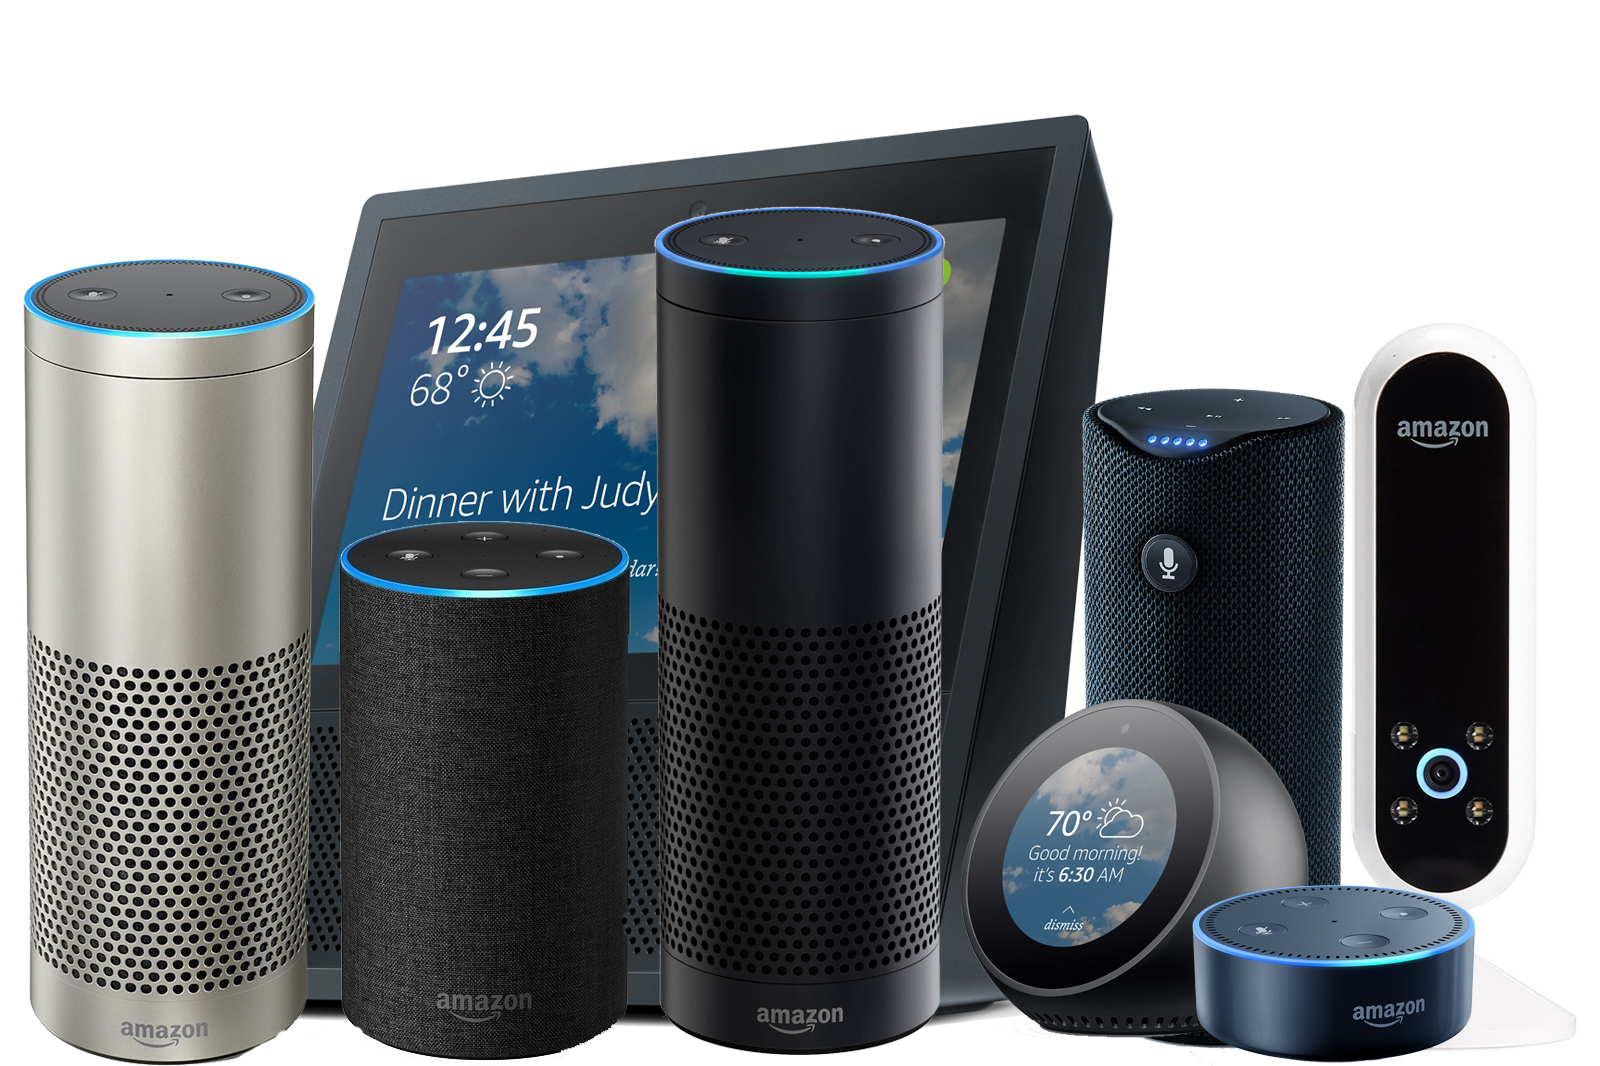 All of Amazon's Echo line of products